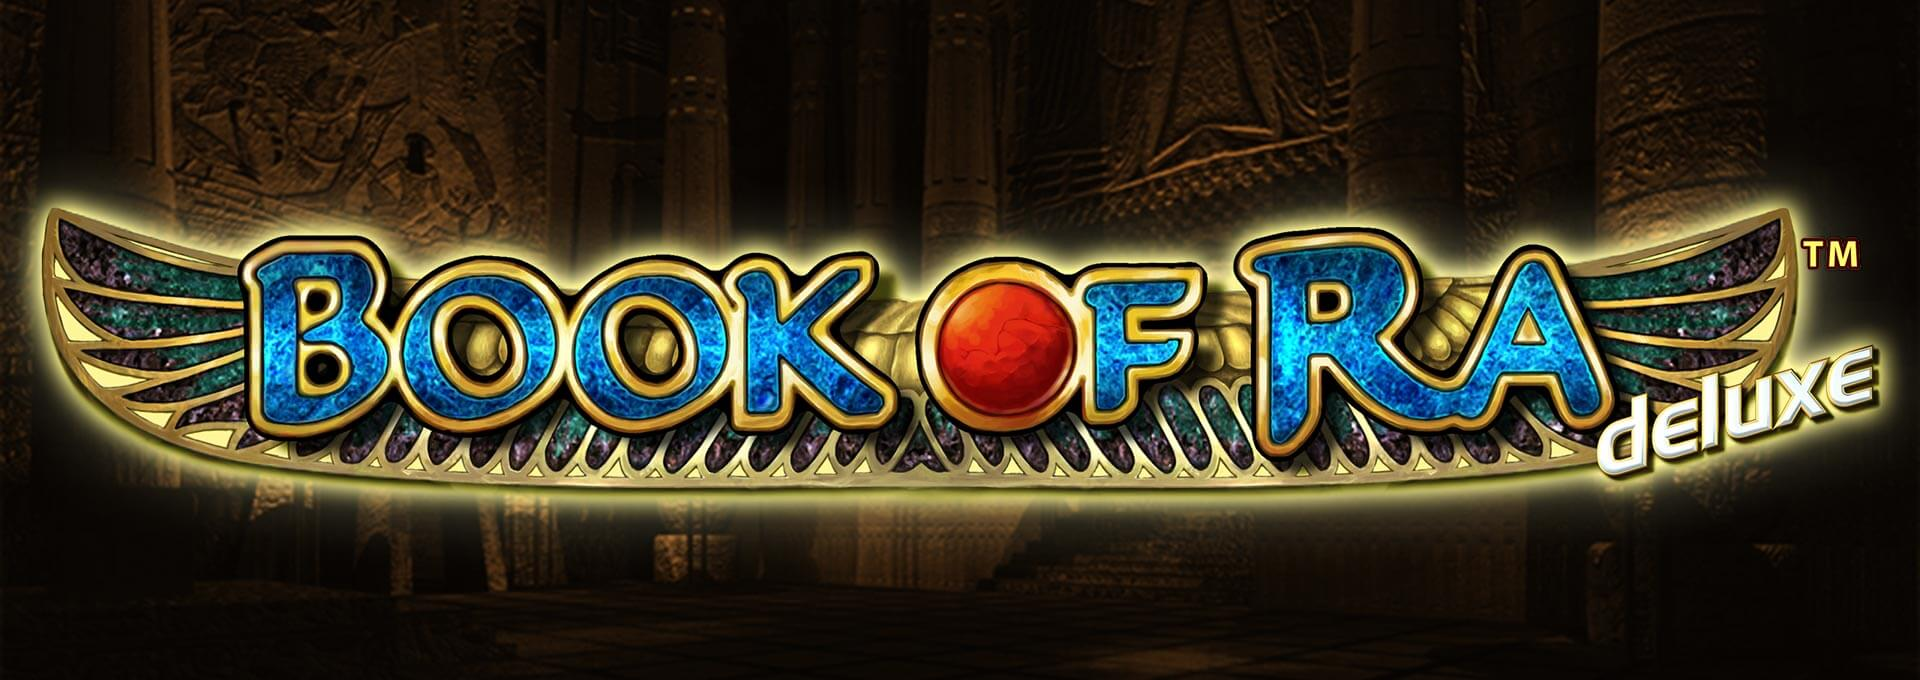 free play casino online book of ra deluxe download kostenlos